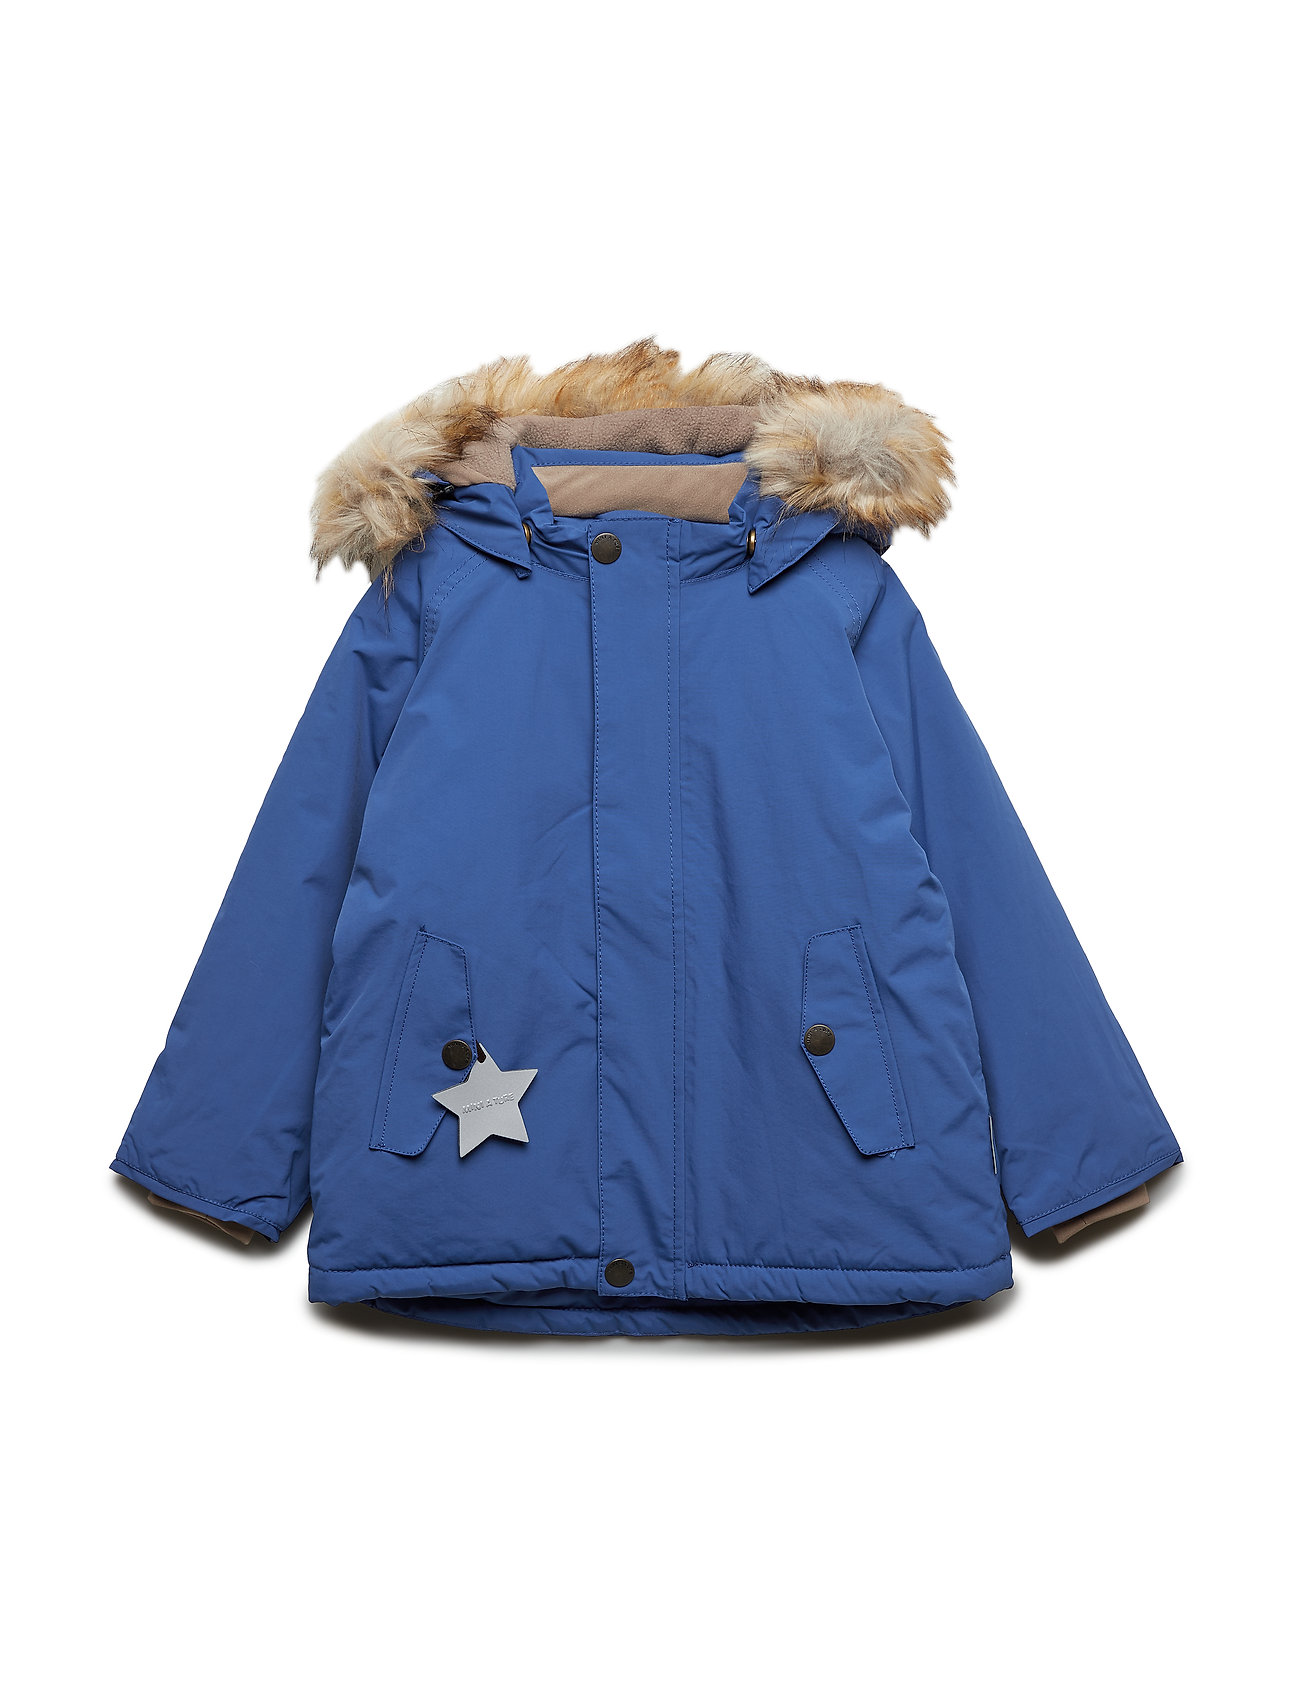 Mini A Ture Wally Faux Fur Jacket, M - BLUE QUARTZ